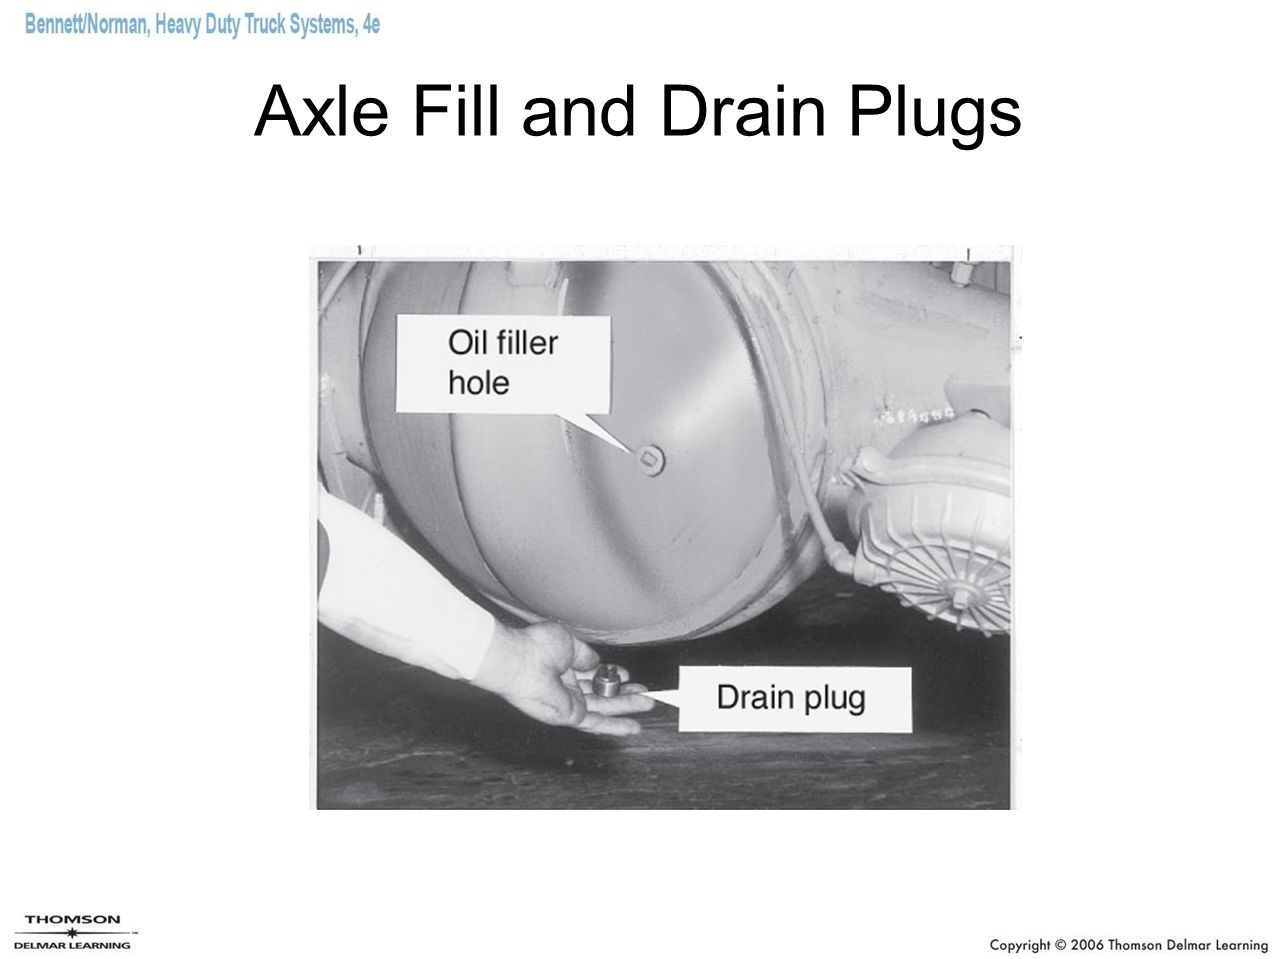 Axle Fill and Drain Plugs